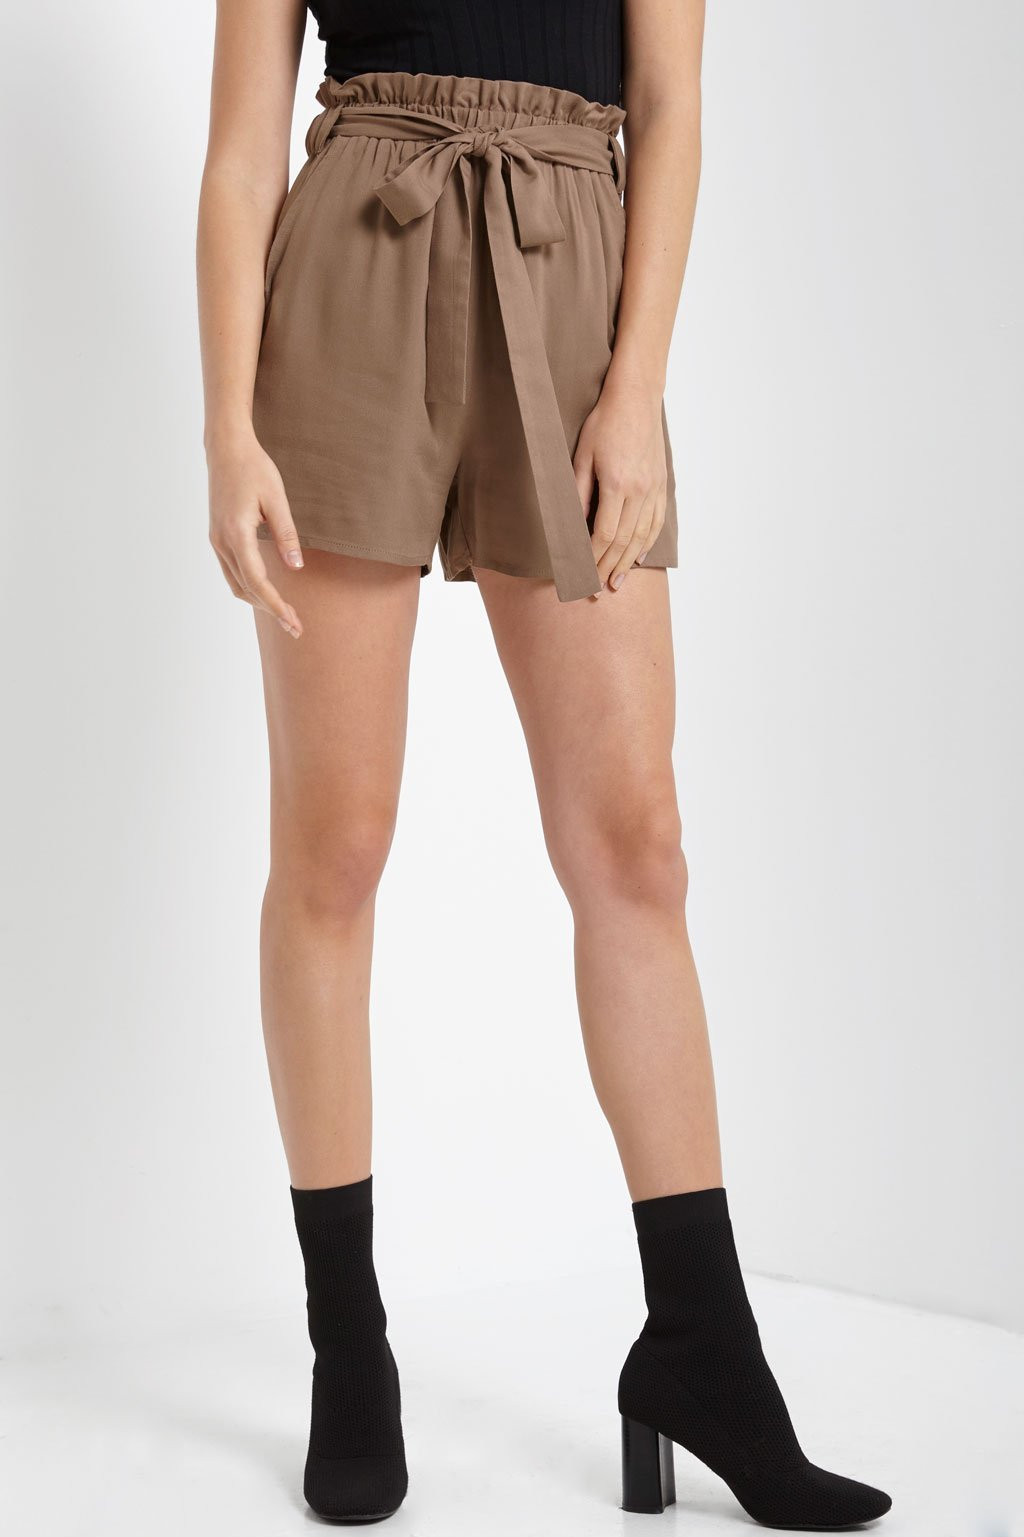 Poshsquare Shorts S / Tan Belted Tie Front Shorts